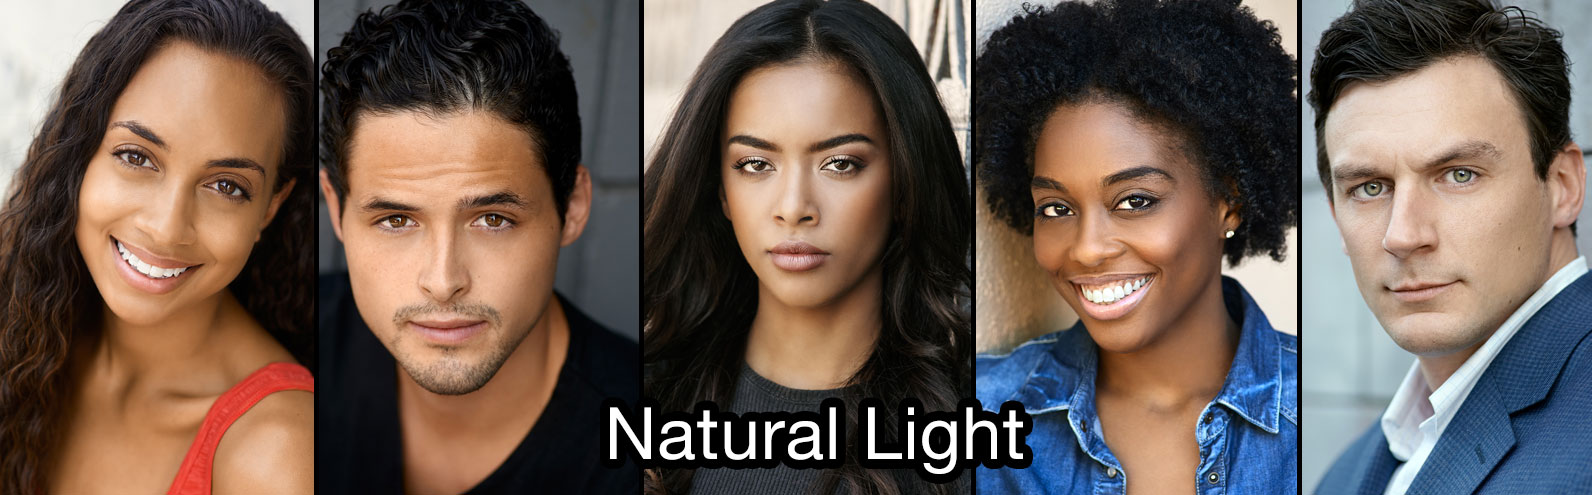 Sample of Natural Light Actor Headshots